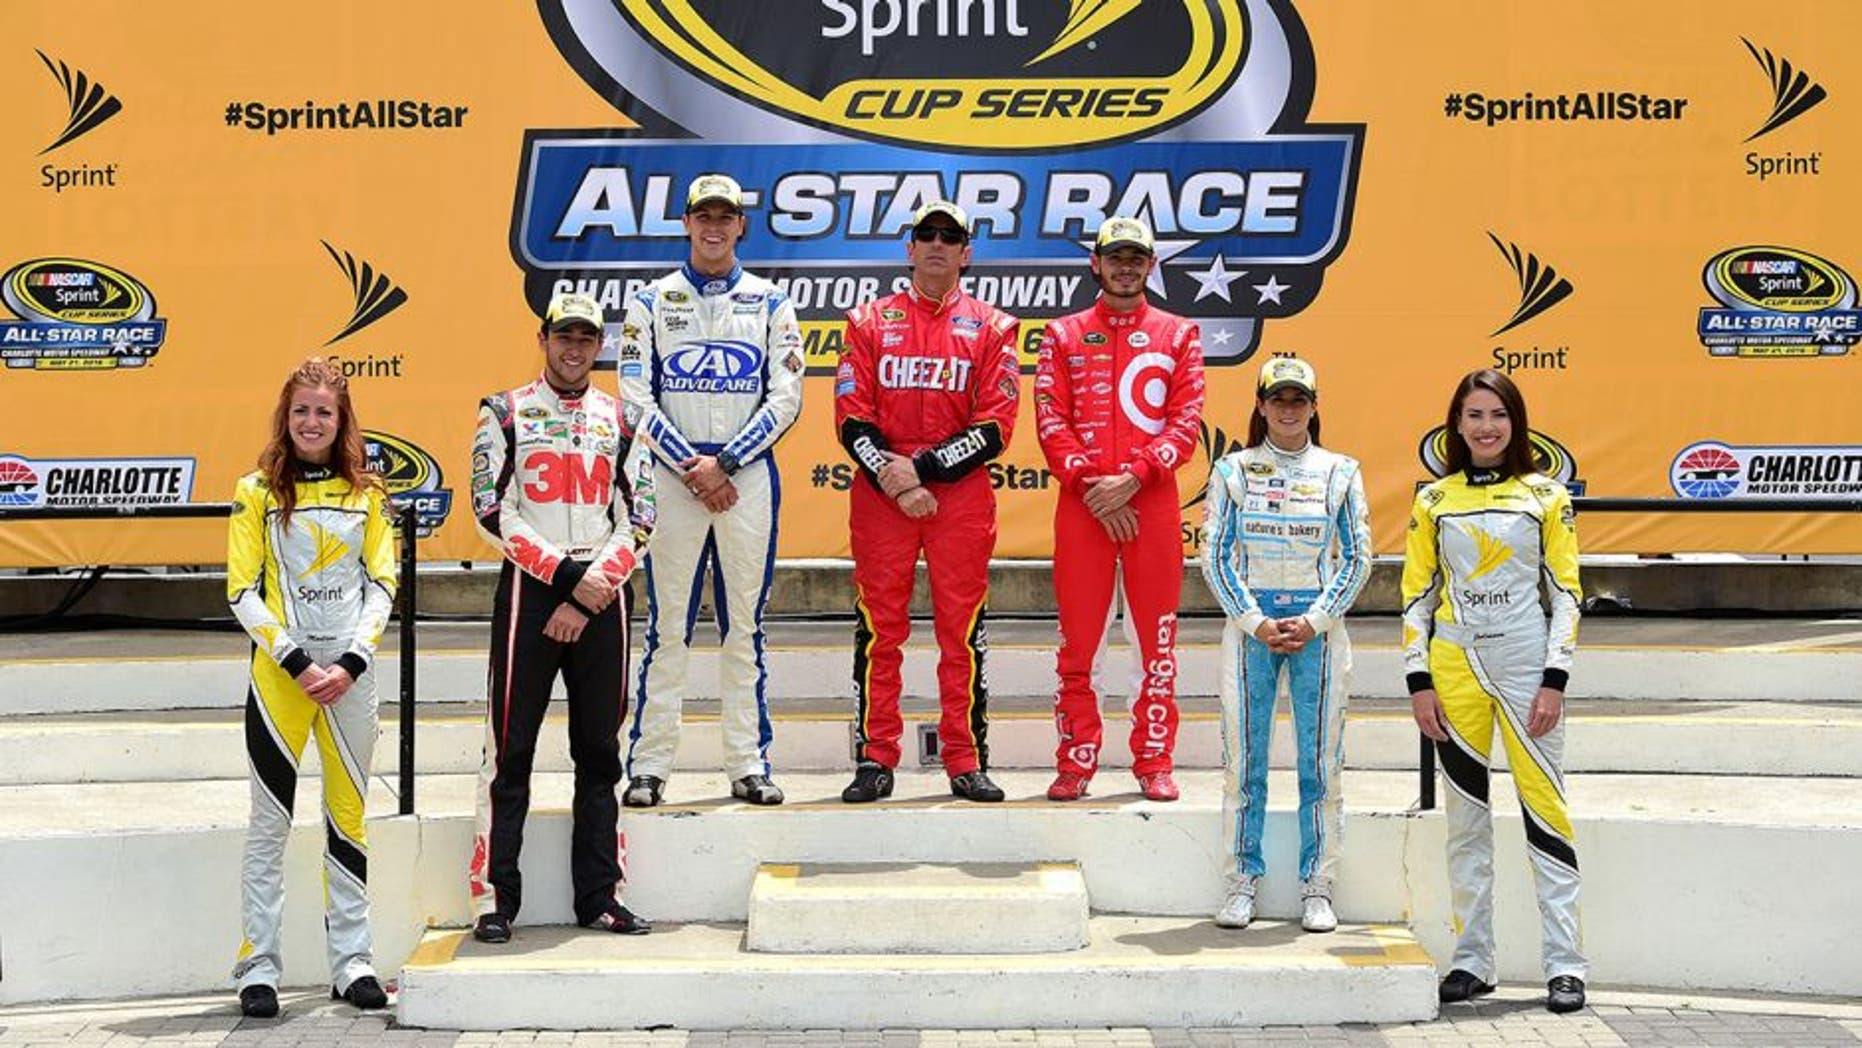 CHARLOTTE, NC - MAY 21: (Top row L-R) The segment winners, Trevor Bayne, driver of the #6 AdvoCare Ford, Greg Biffle, driver of the #16 Cheez-It Ford, and Kyle Larson, driver of the #42 Target Chevrolet, pose with the fan vote winners Chase Elliott, driver of the #24 3M Chevrolet, and Danica Patrick, driver of the #10 Nature's Bakery Chevrolet, in Victory Lane after the NASCAR Sprint Cup Series Sprint Showdown at Charlotte Motor Speedway on May 21, 2016 in Charlotte, North Carolina. (Photo by Jared C. Tilton/Getty Images)